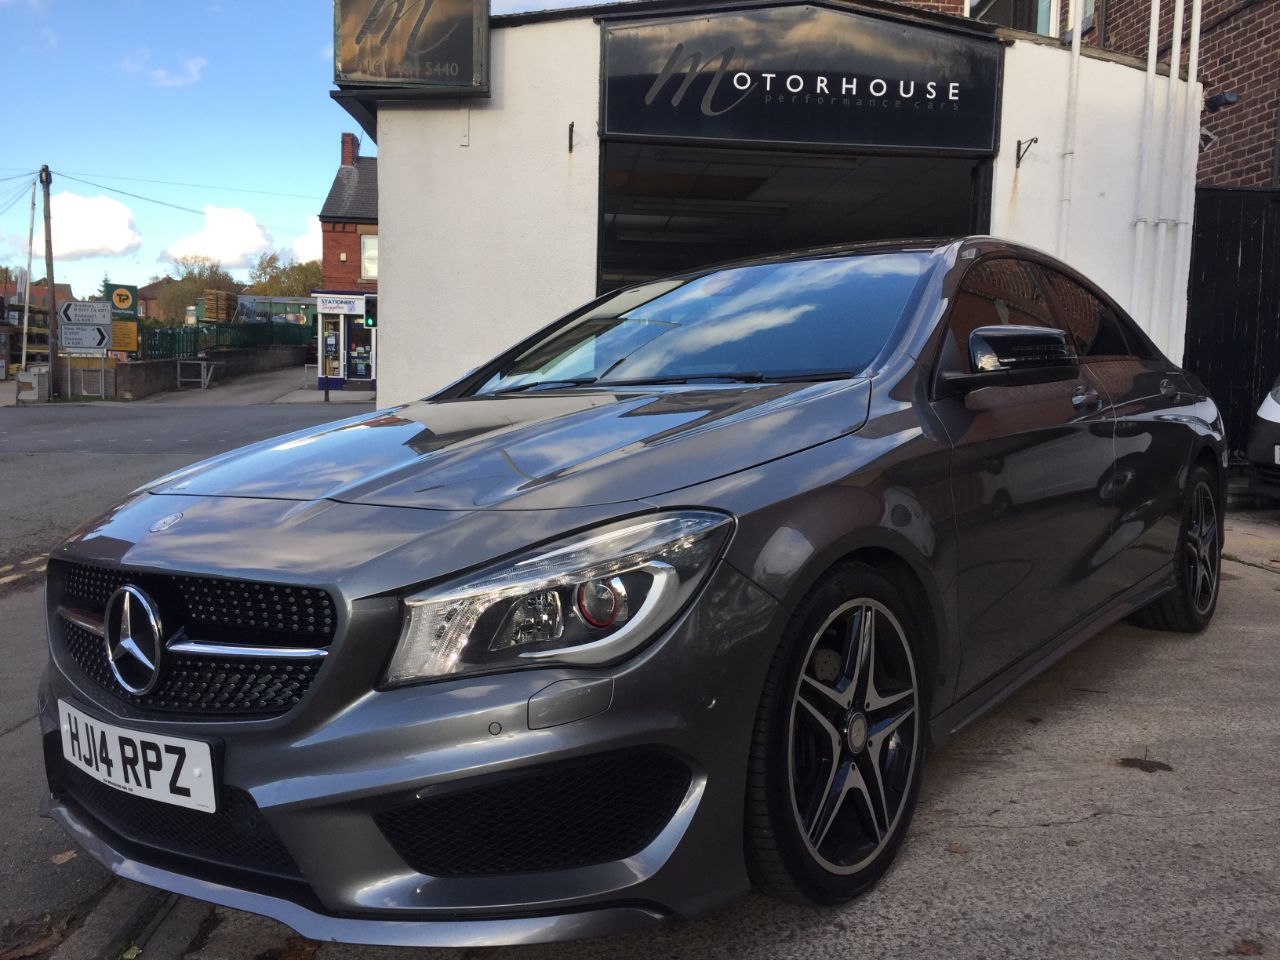 Mercedes-Benz Cla Class 1.6 CLA 180 AMG Sport 4dr Tip Auto Saloon Petrol Grey at Motorhouse Cheshire Stockport